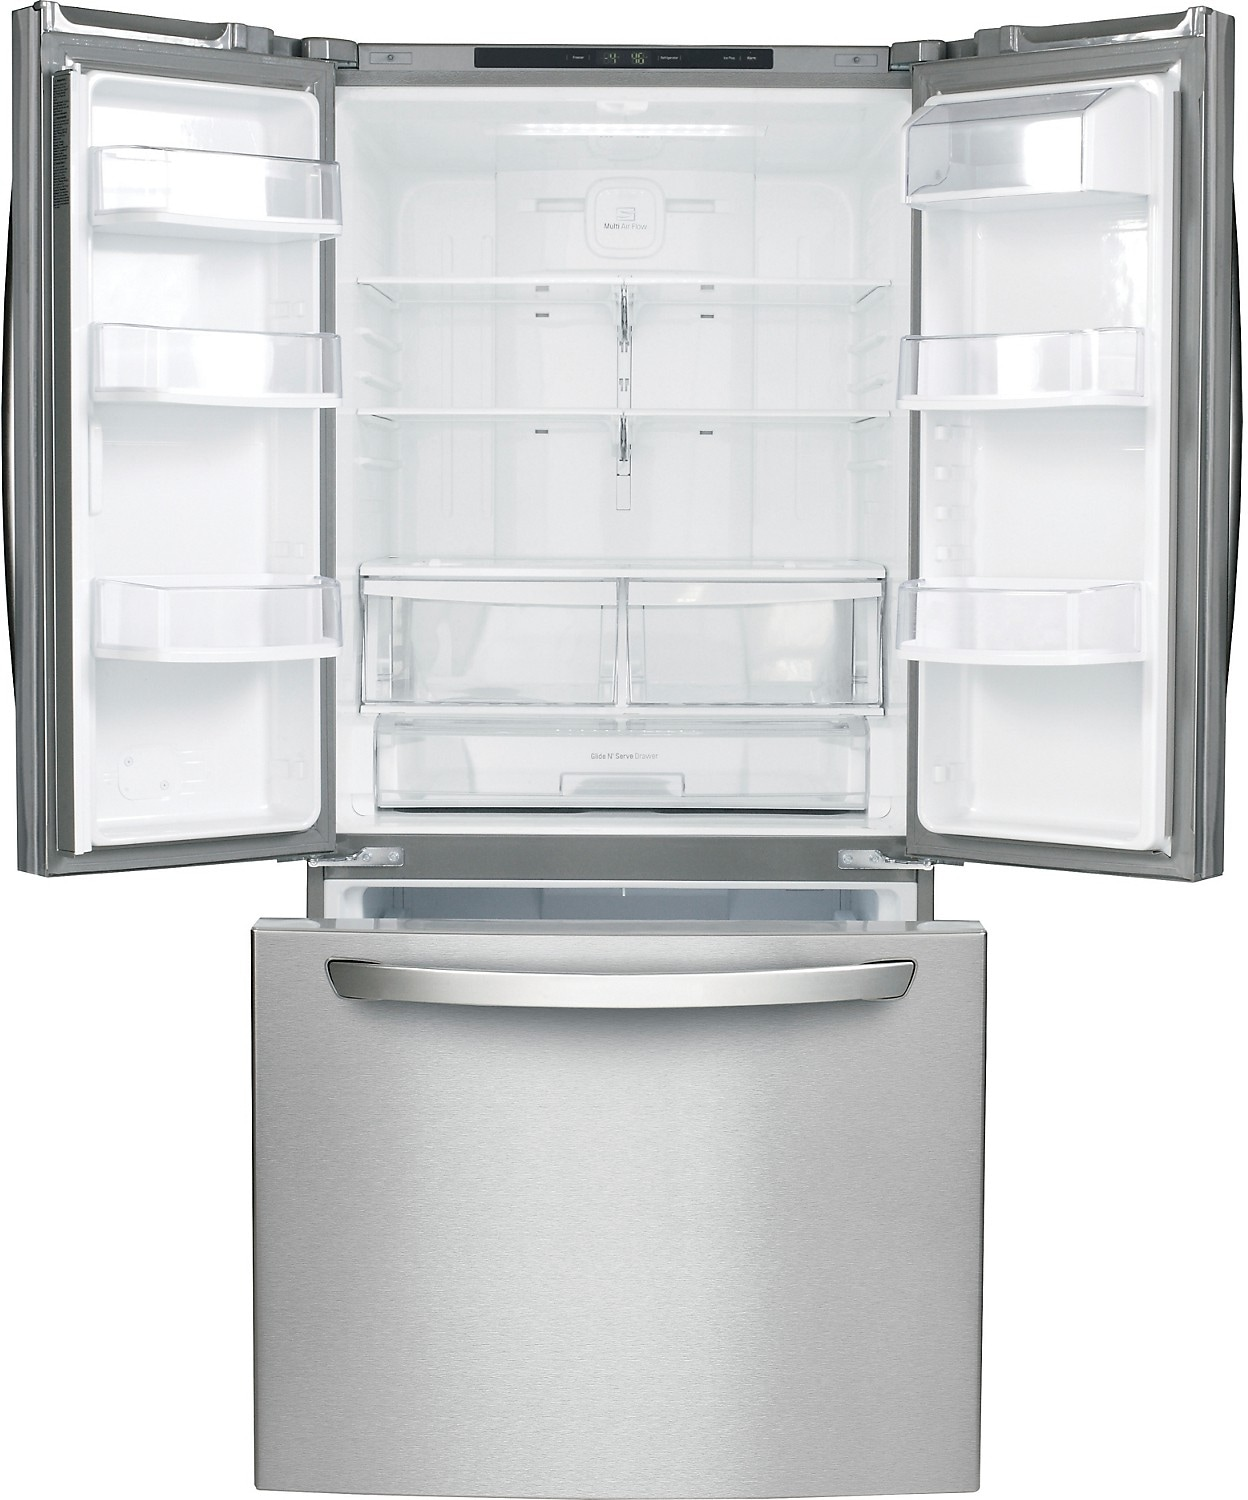 Lg 24 Cu Ft French Door Refrigerator With Smart Cooling